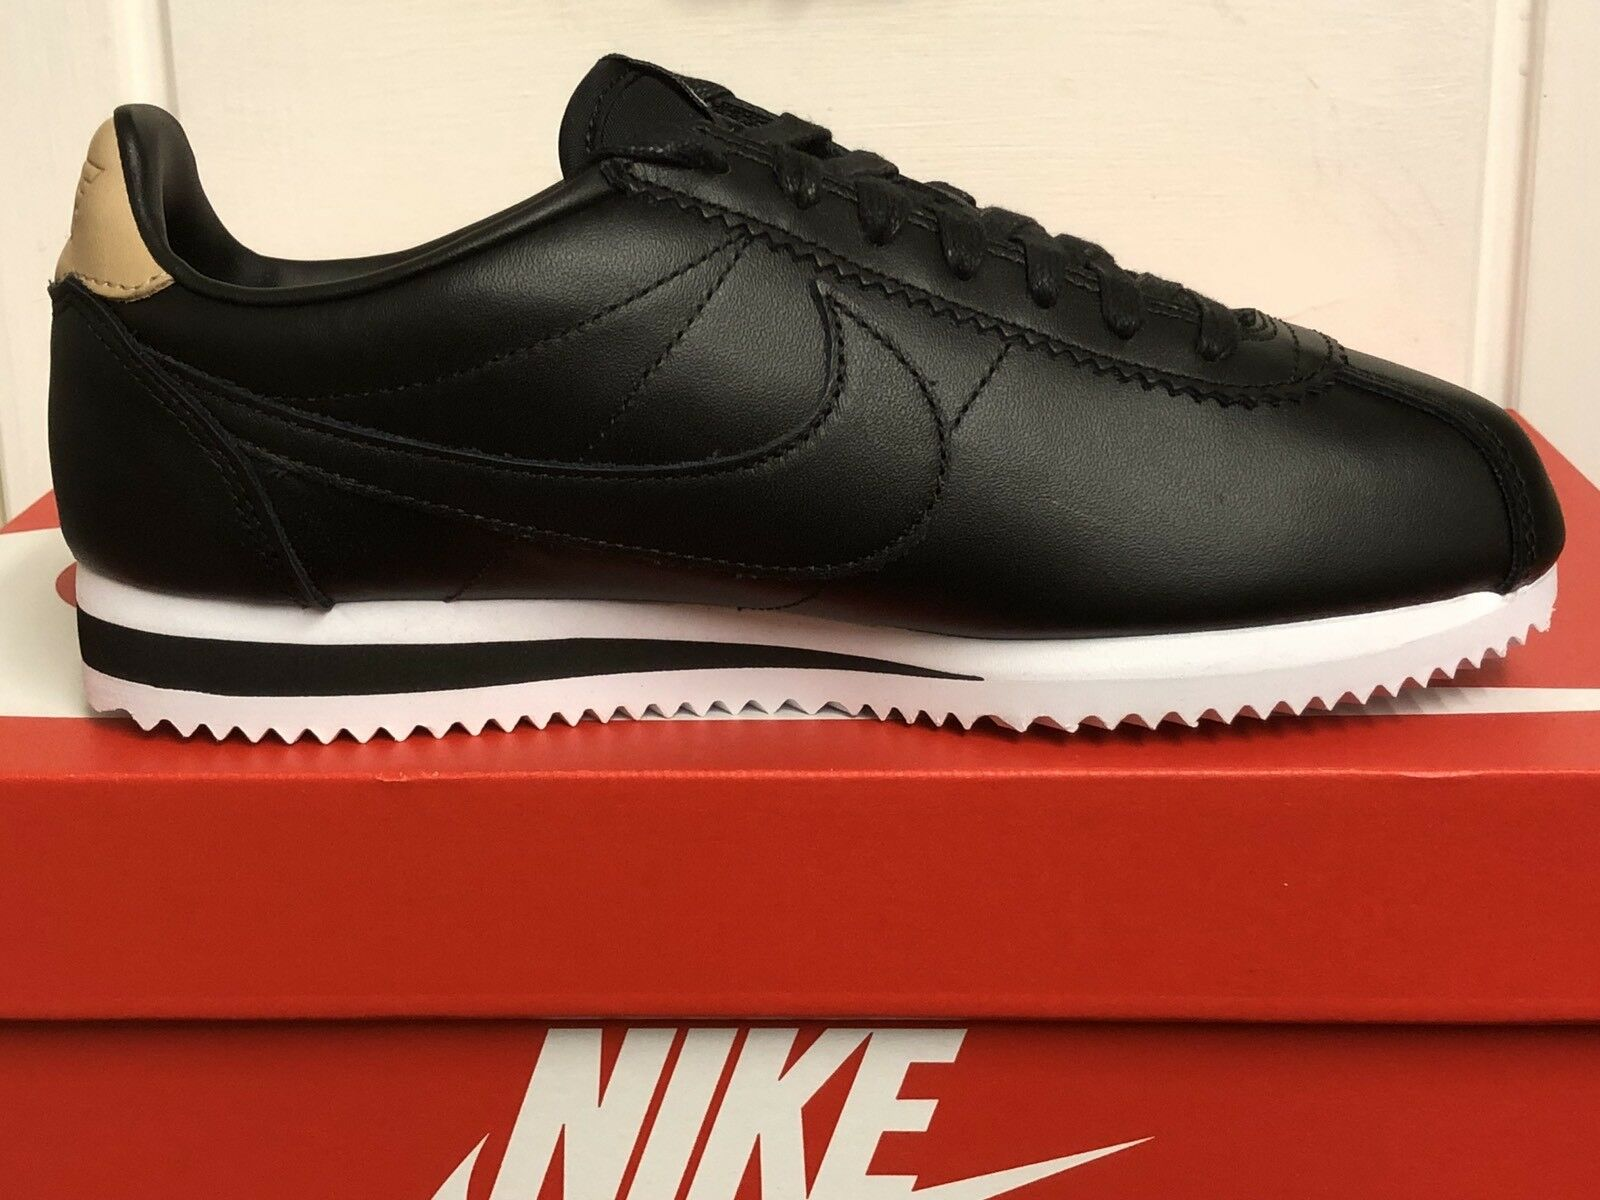 NIKE CLASSIC CORTEZ Homme Leather SE Homme CORTEZ Trainers Sneakers Chaussures5,5 EUR 38,5 f5e8dd